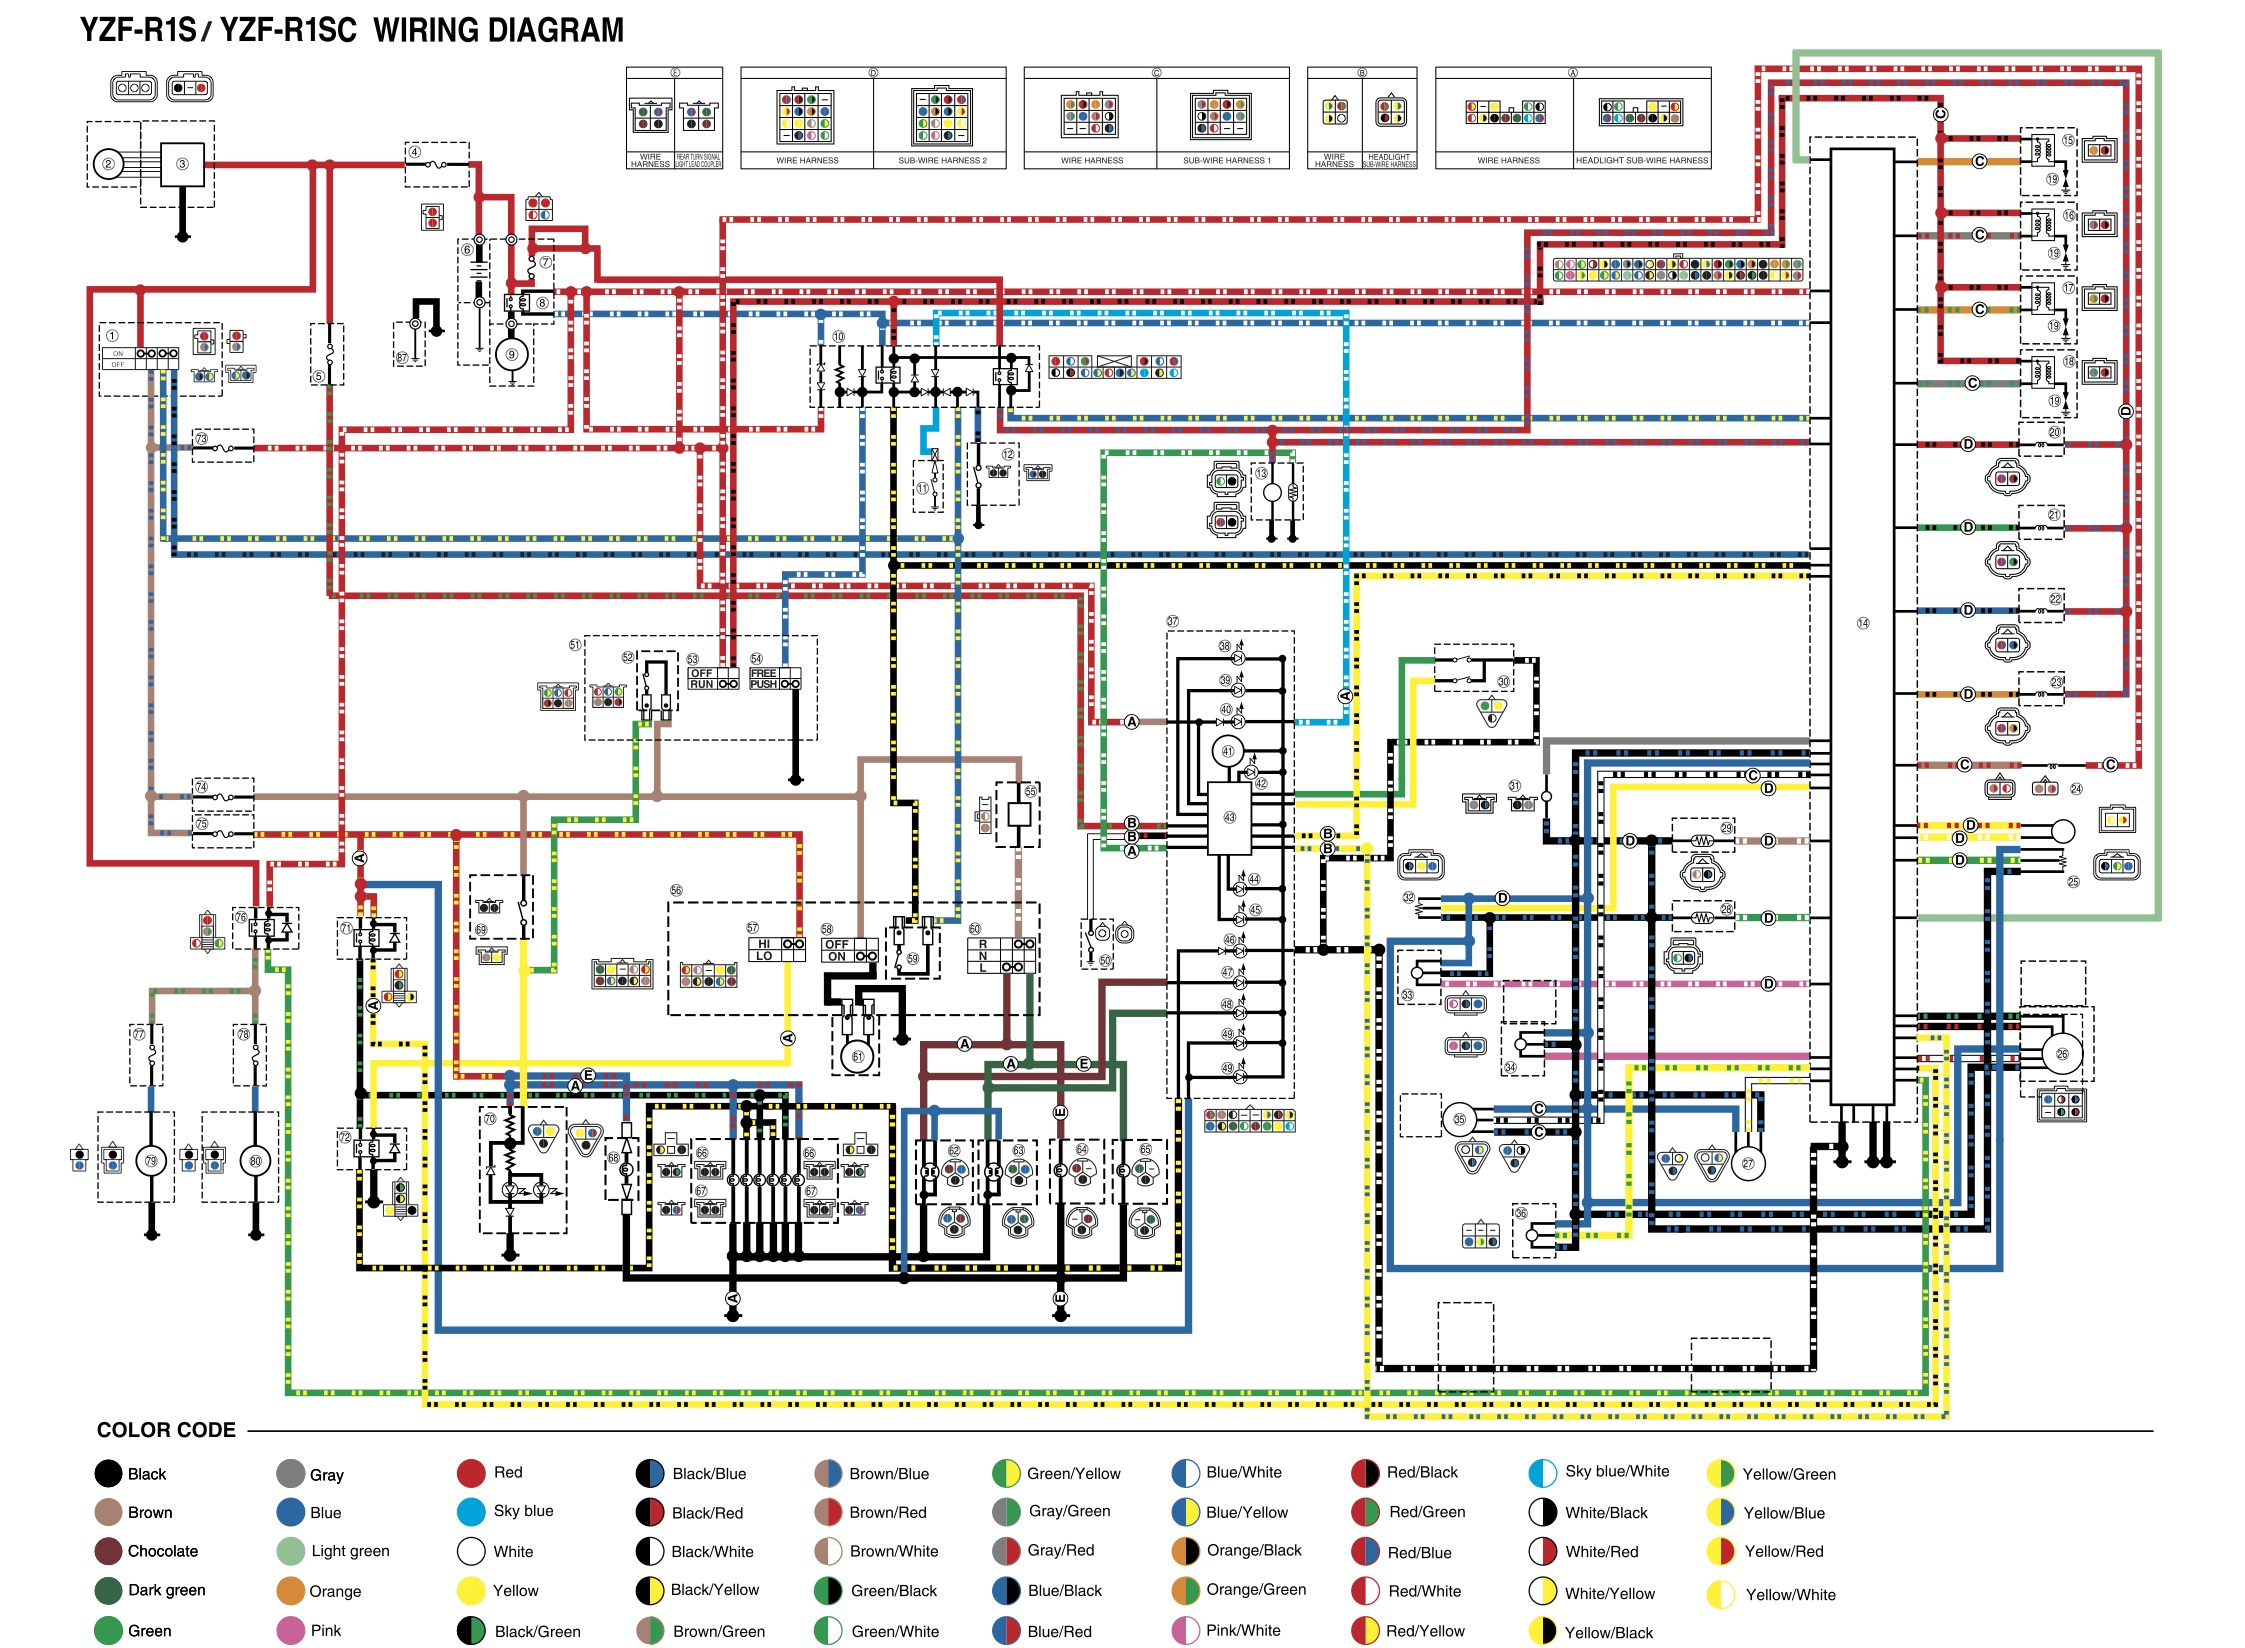 yamaha cdi ignition wiring diagram yamaha r6 ignition wiring diagram